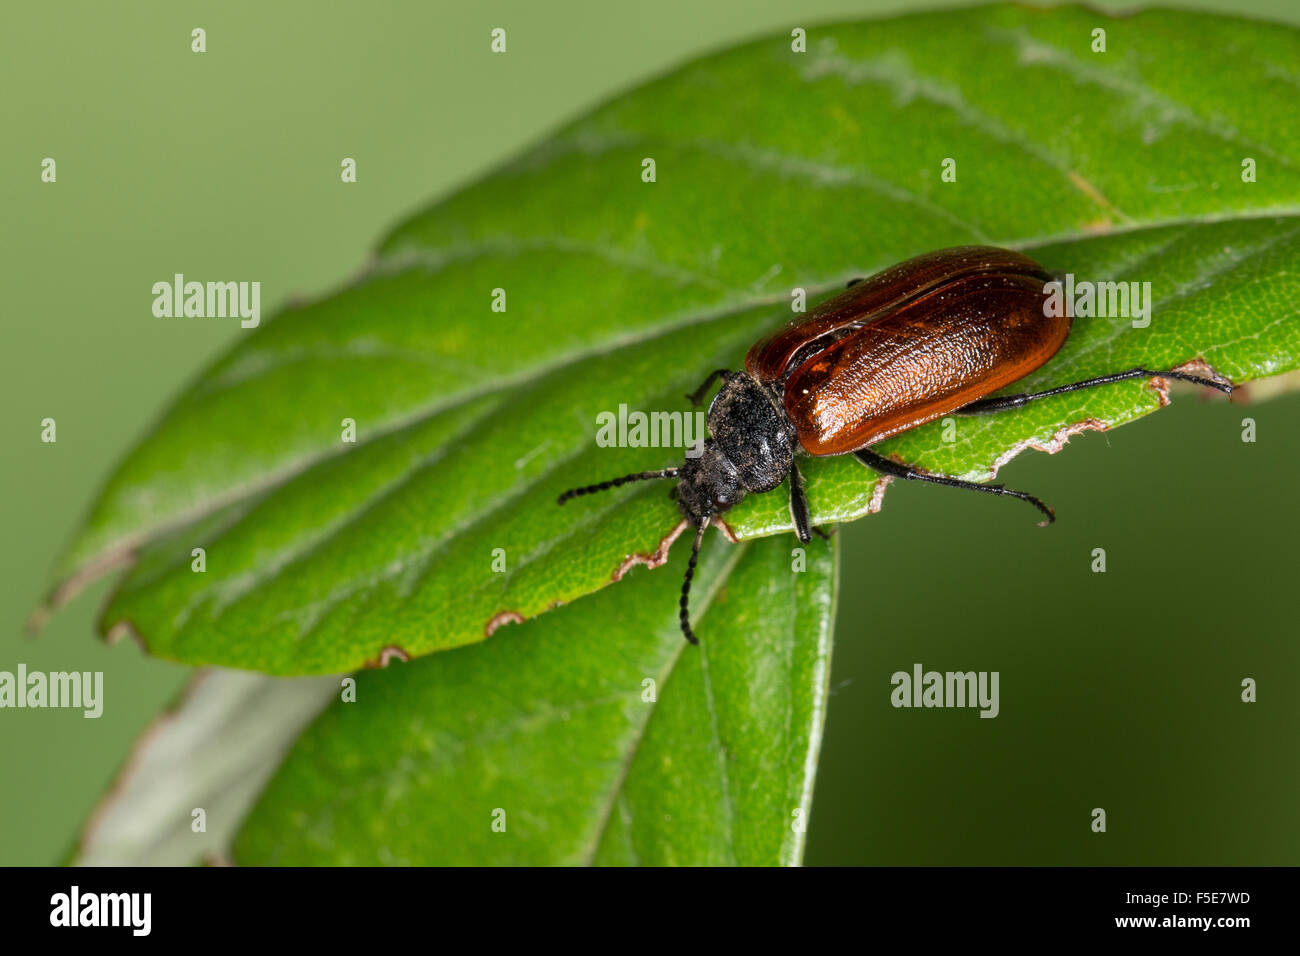 Comb-clawed beetle, Comb clawed beetle, Pflanzenkäfer, Omophlus spec., Odontomophlus spec., Pflanzenkäfer, - Stock Image